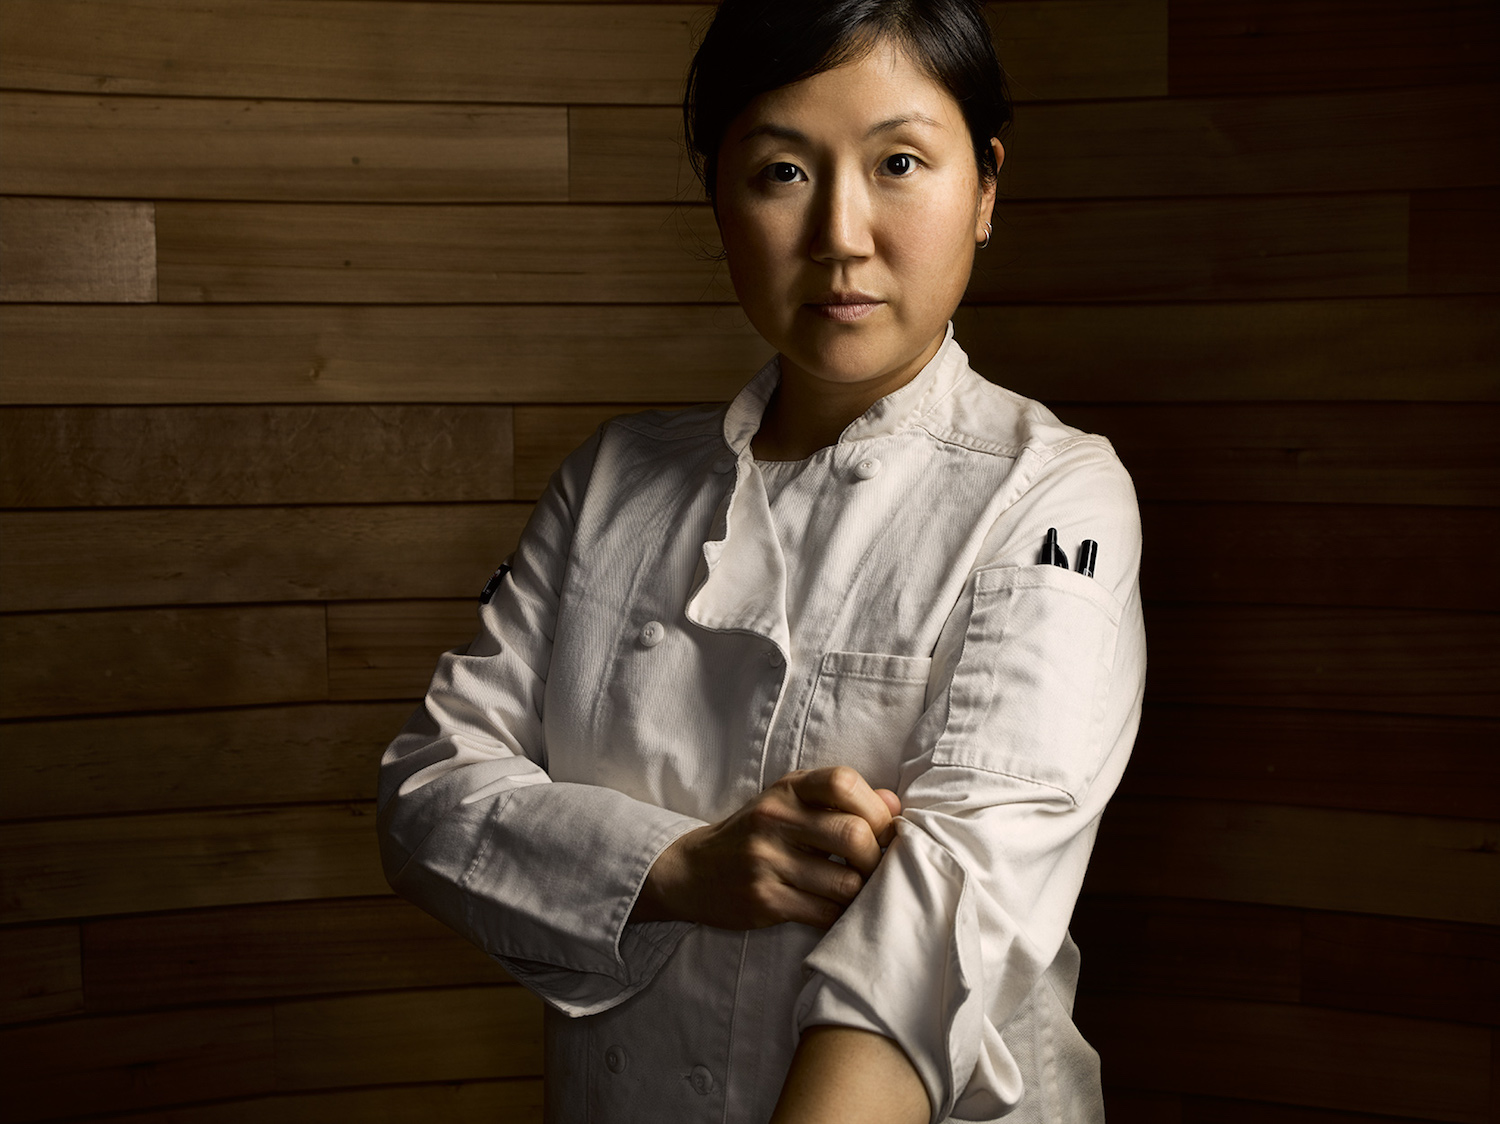 15 Badass Female Chefs and Restaurateurs You Need to Know Around the